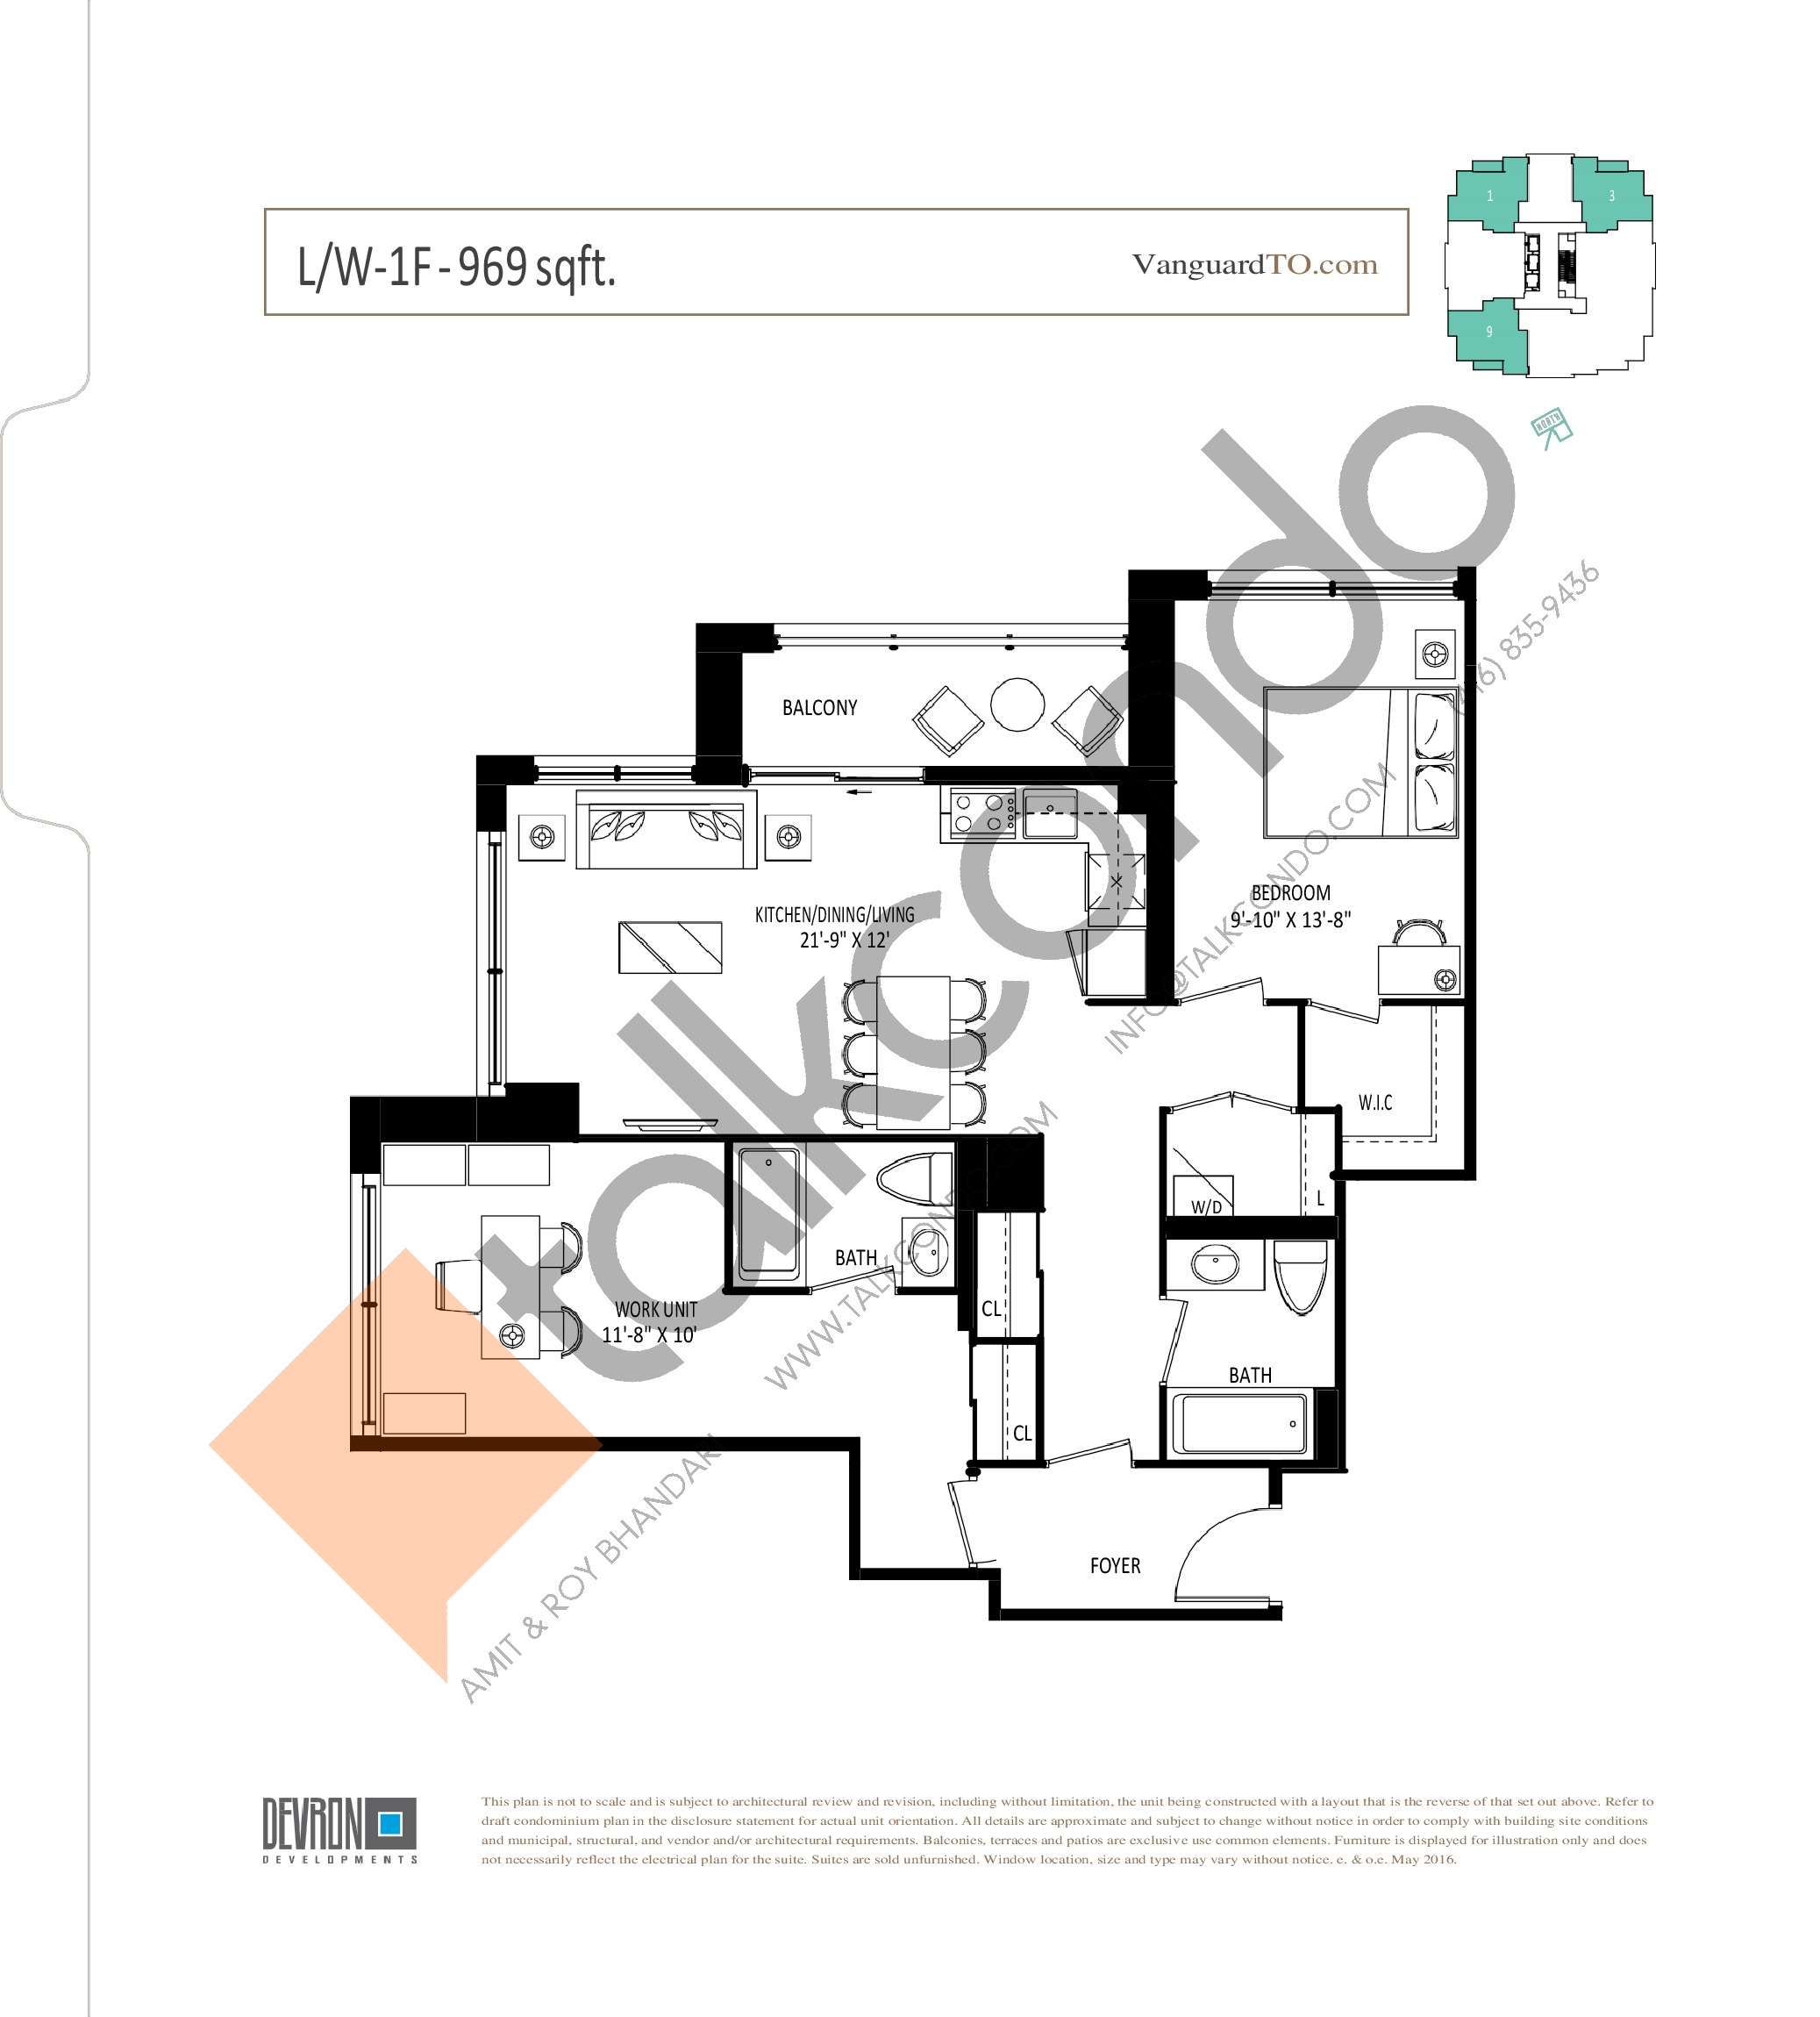 L/W-1F Floor Plan at The Vanguard - 969 sq.ft